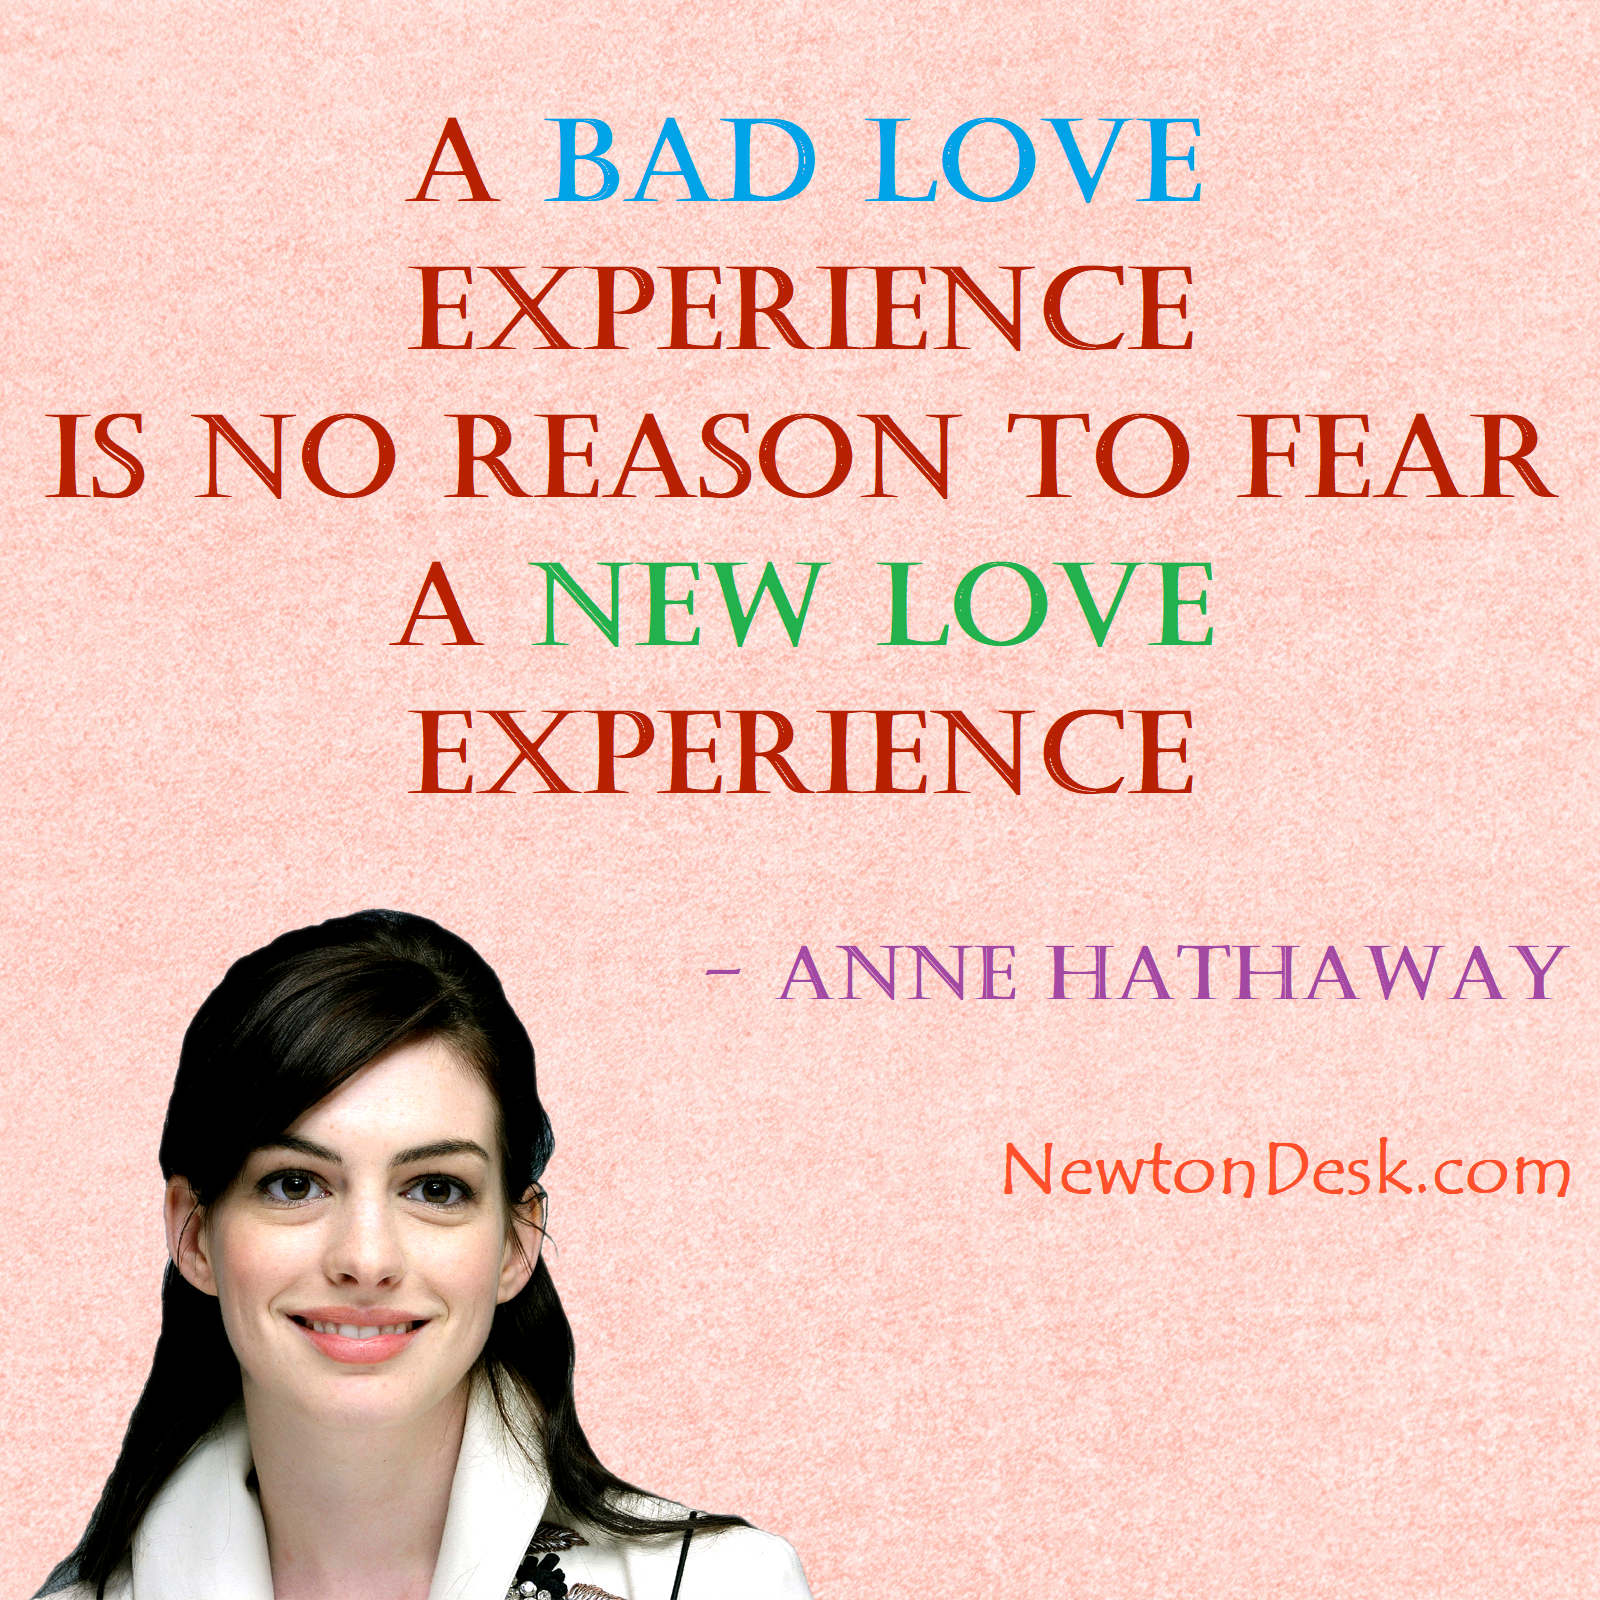 A Bad Love And New Love Experience - Anne Hathaway Quotes